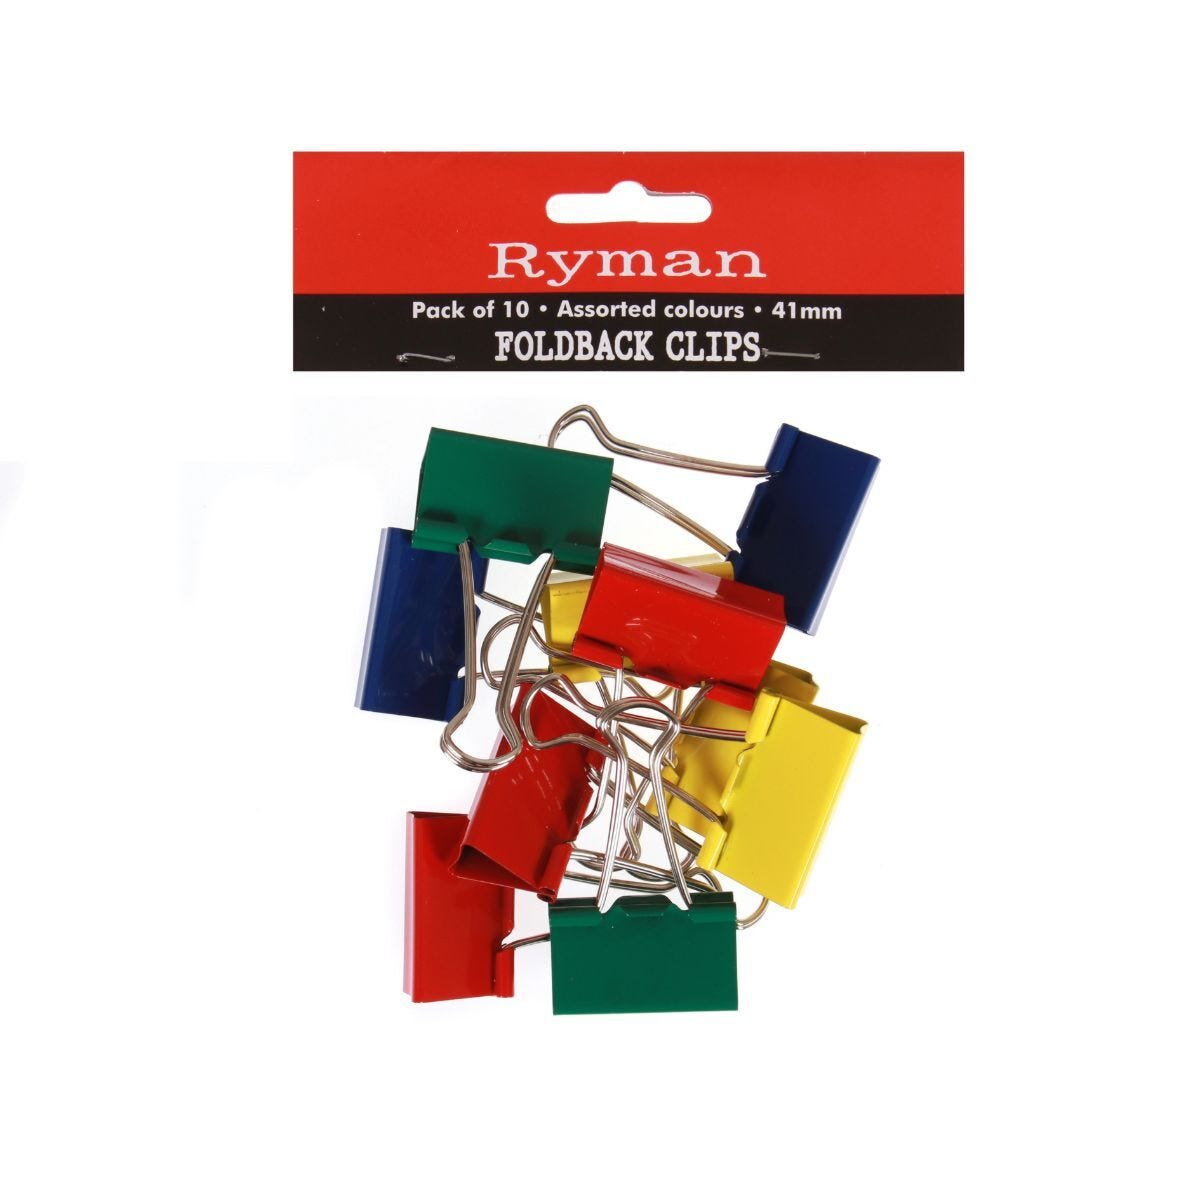 Ryman Foldback Clips 41mm Pack of 10